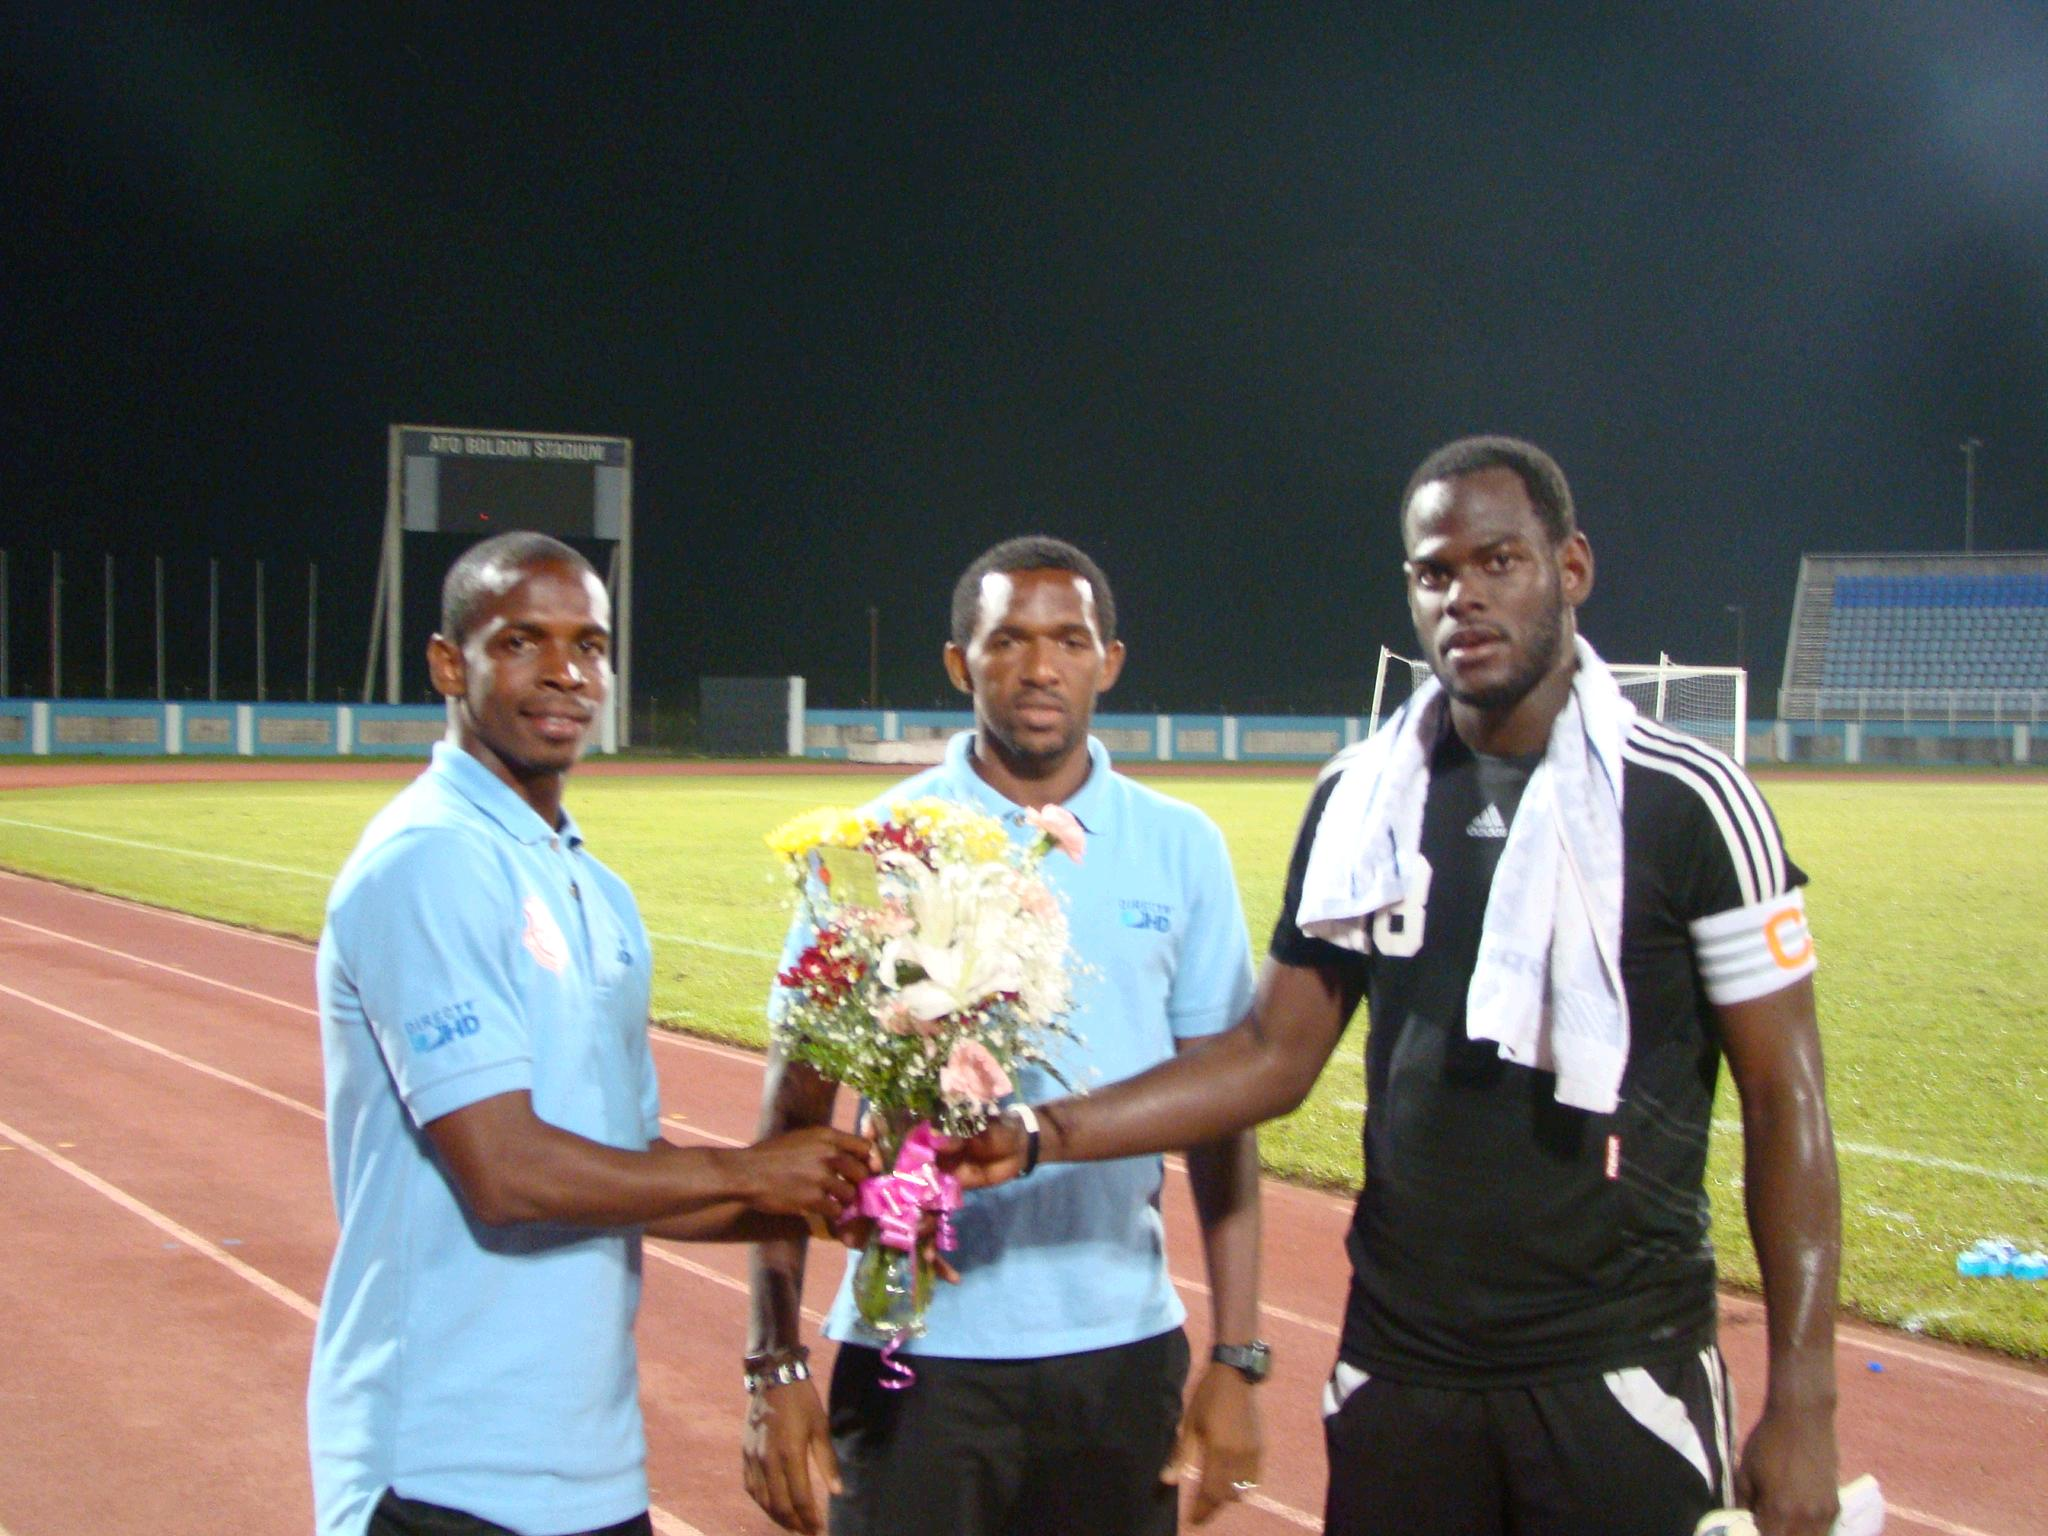 Lto R Antony Wolfe and Charles Pollard of North East Stars present Jan-Michael Williams with a bouquet for his fiancee, Candice Worrell.